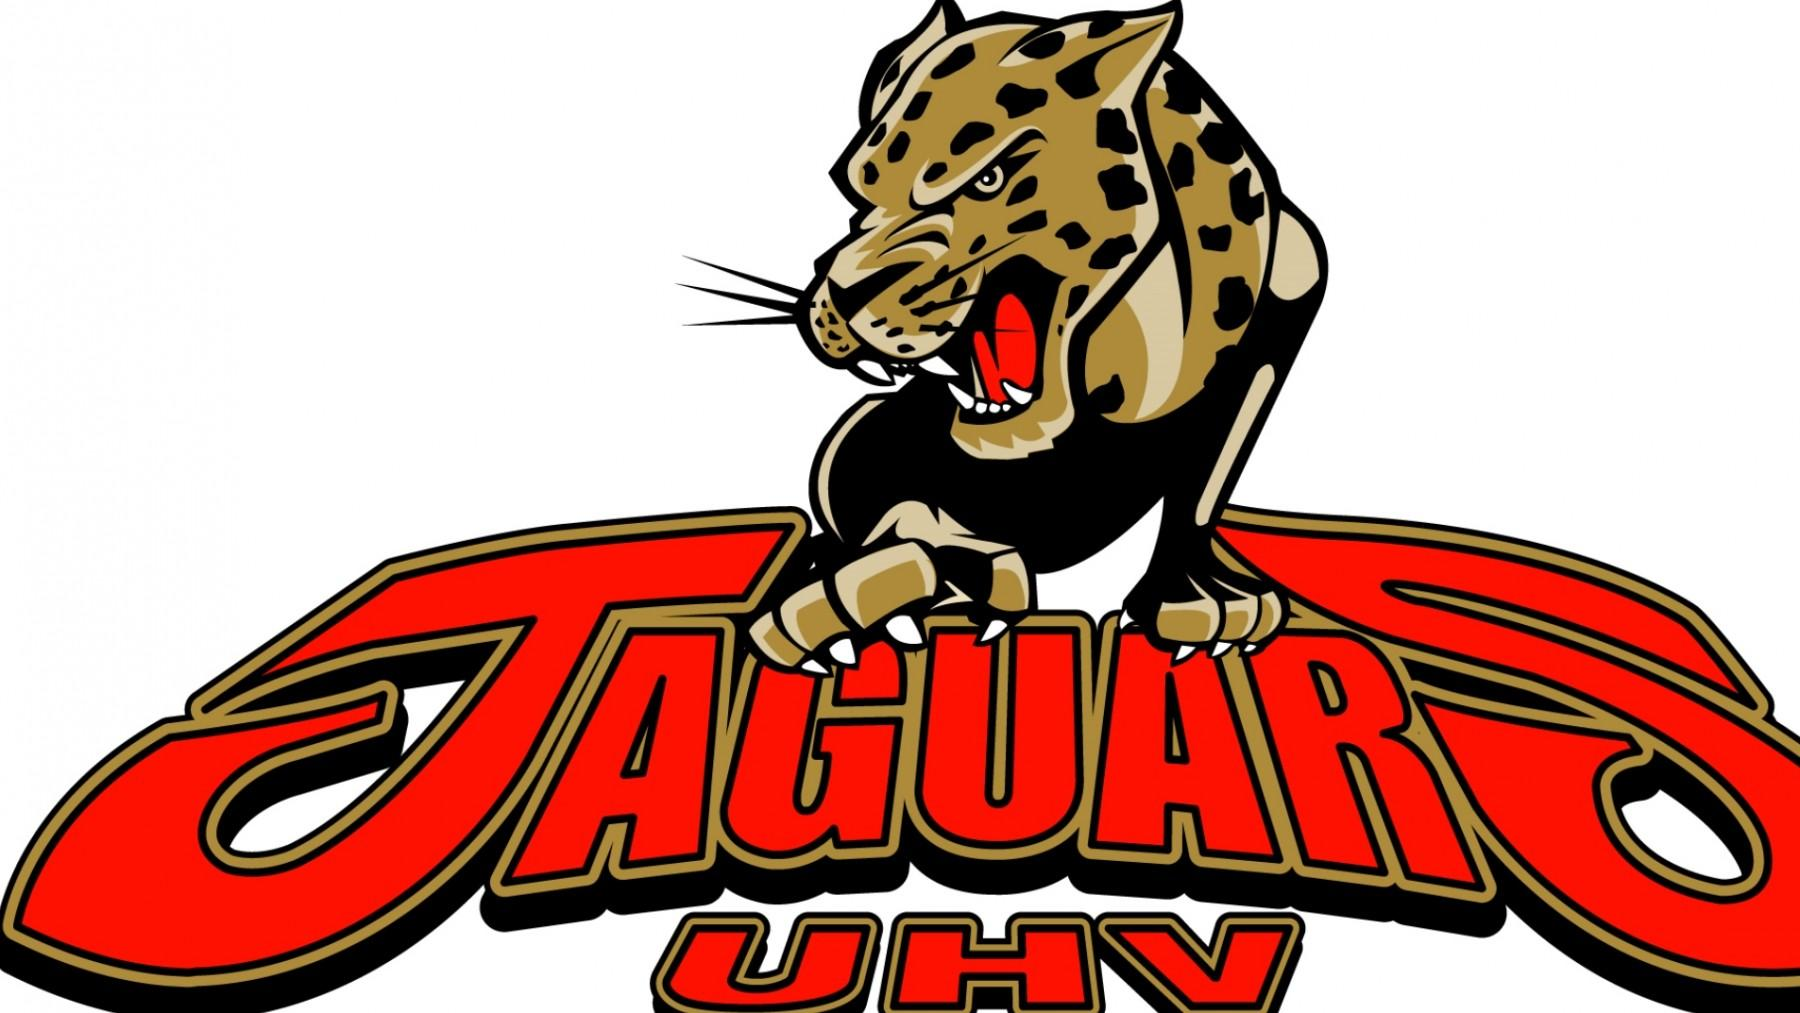 31 UHV athletes receive spring academic honors | University of ...